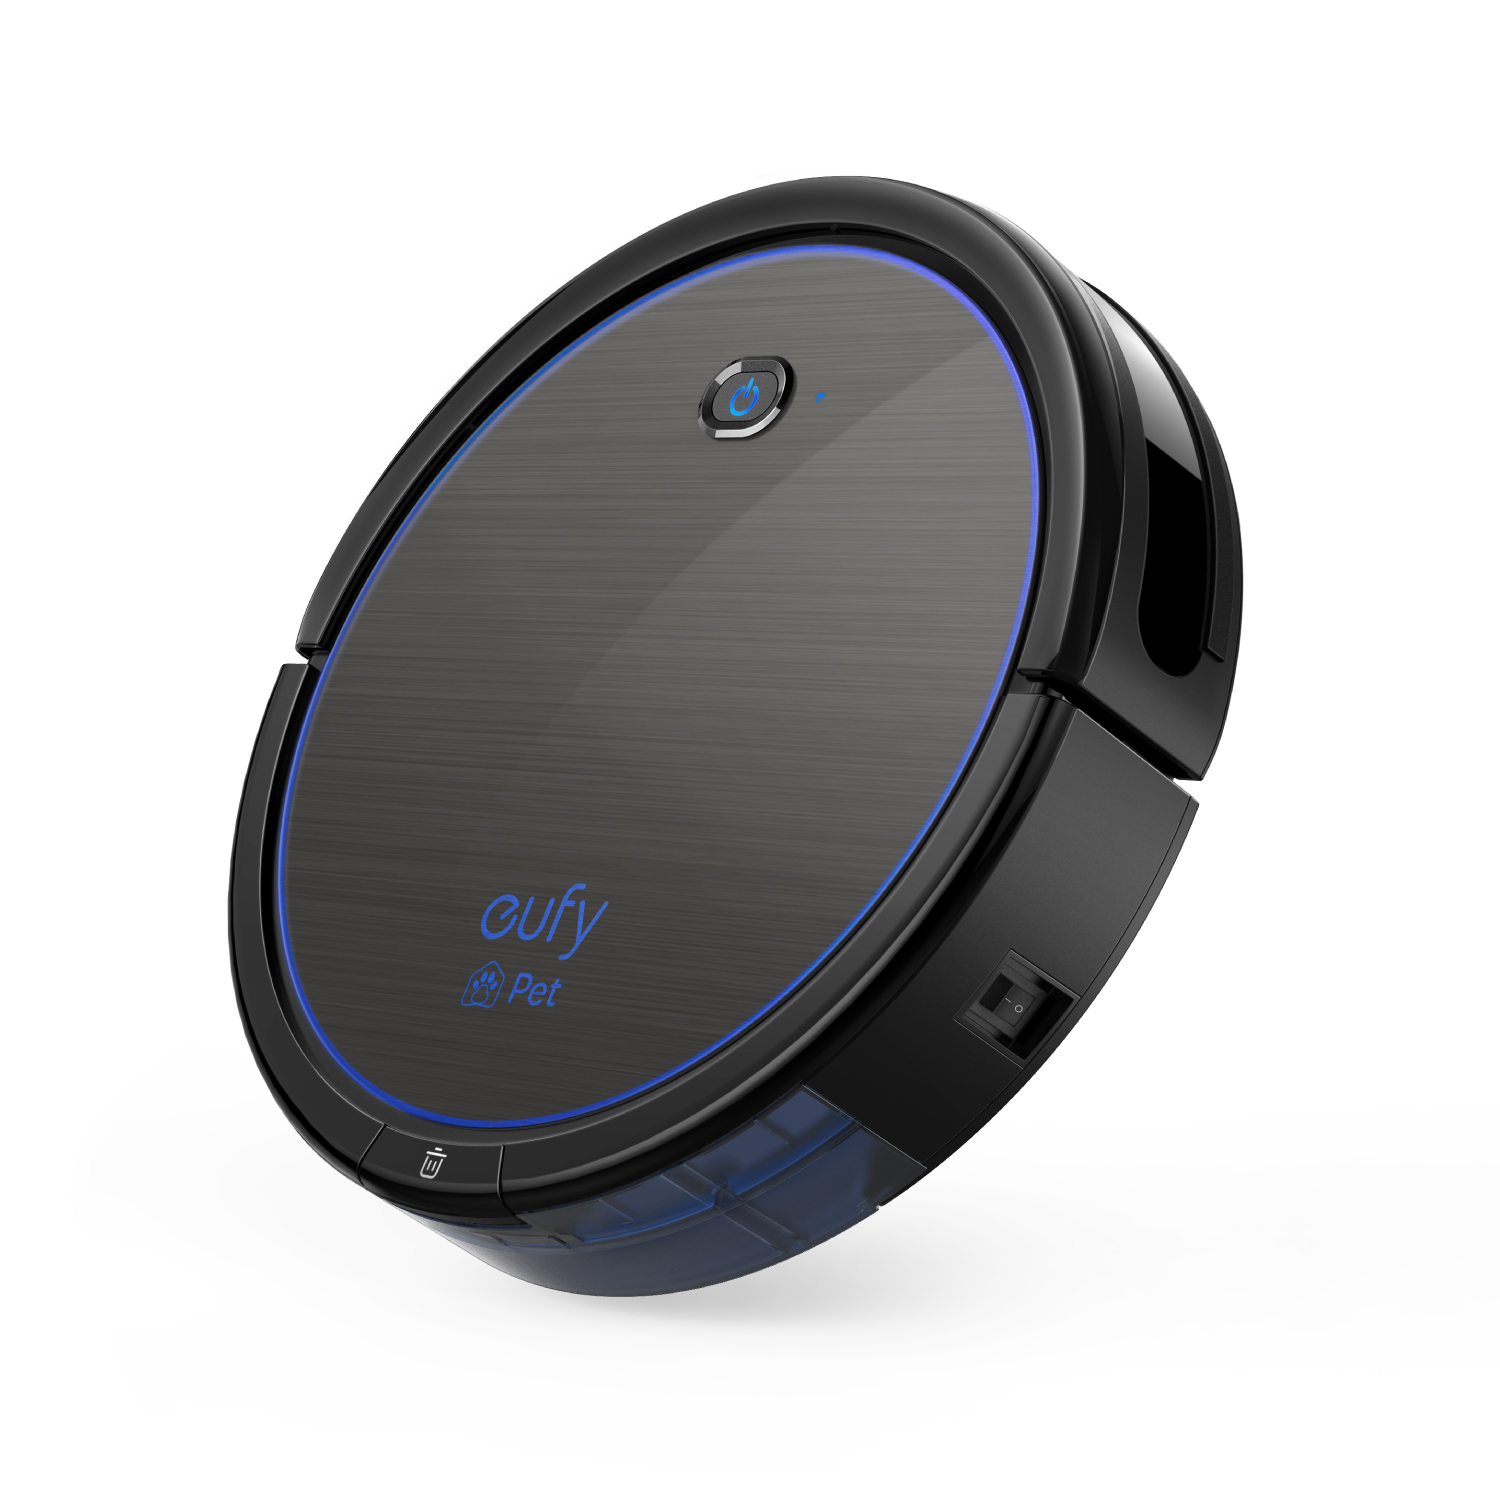 Eufy RoboVac 11c Pet Edition Wi-Fi Connected Robot Vacuum